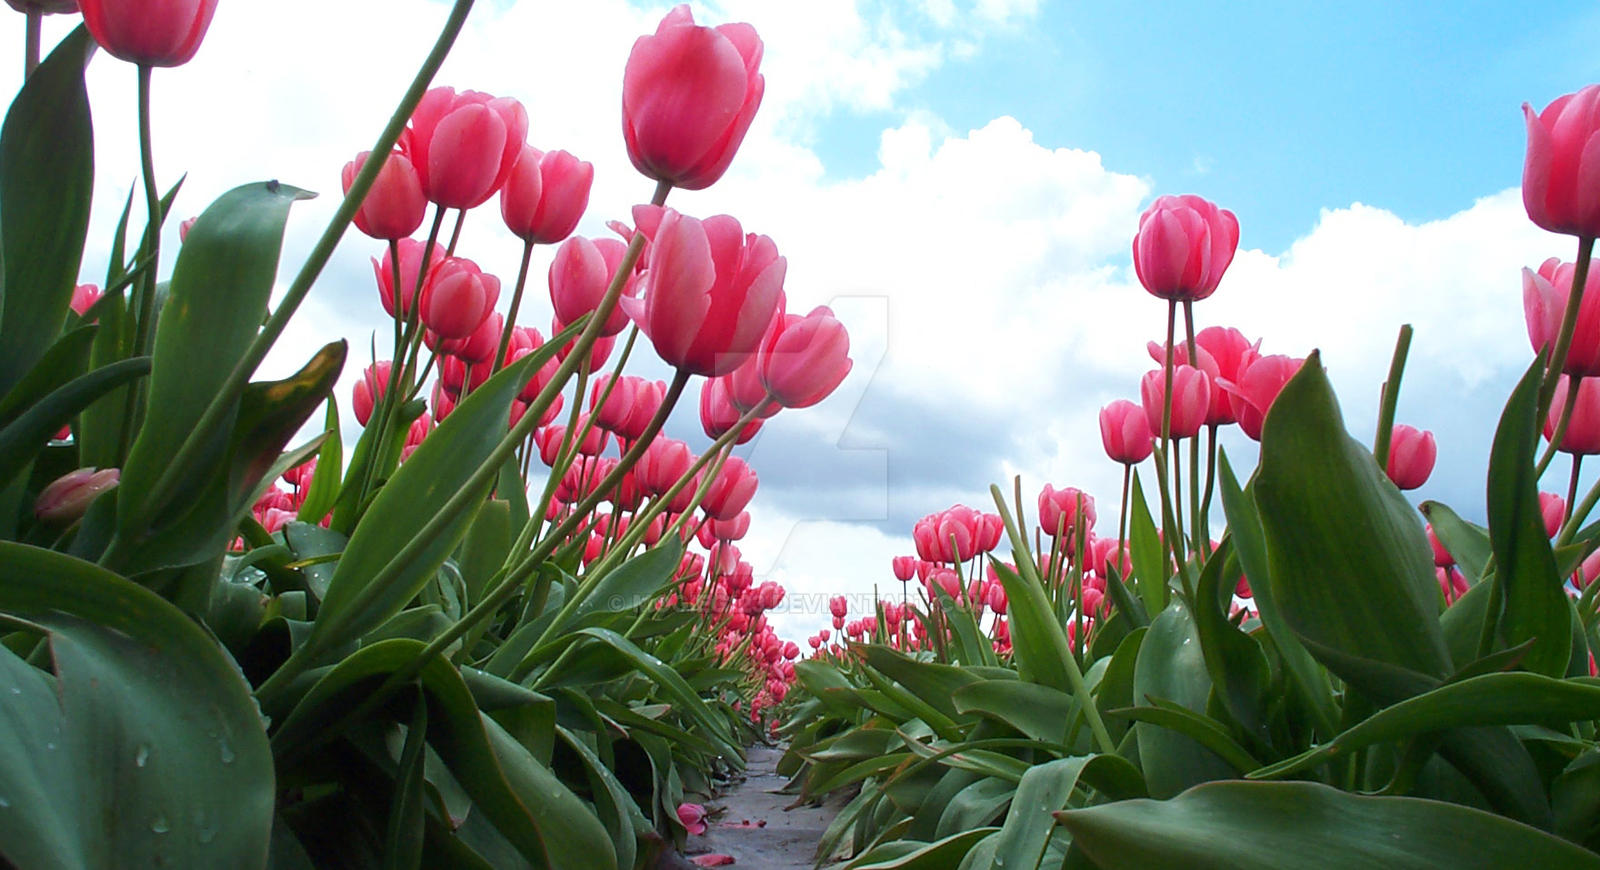 Bug's View of Pink Tulips